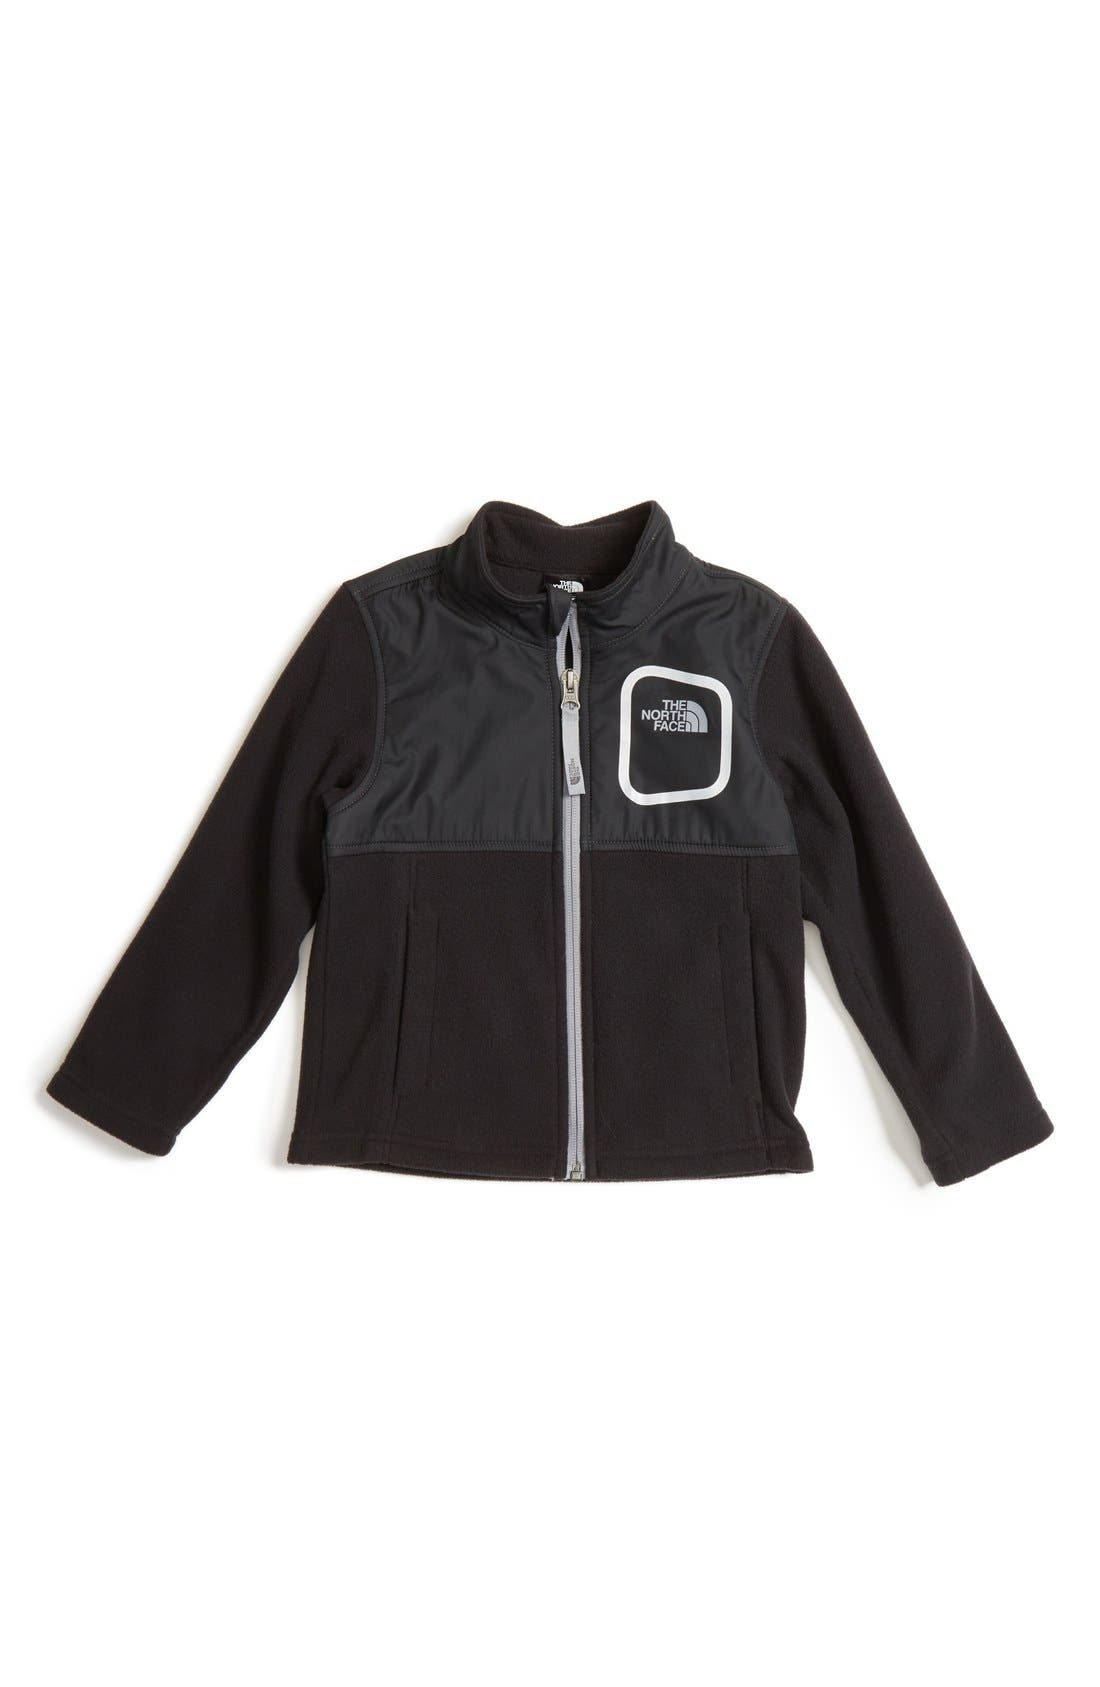 Alternate Image 1 Selected - The North Face Peril Glacier Microfleece Track Jacket (Toddler Boys & Little Boys)